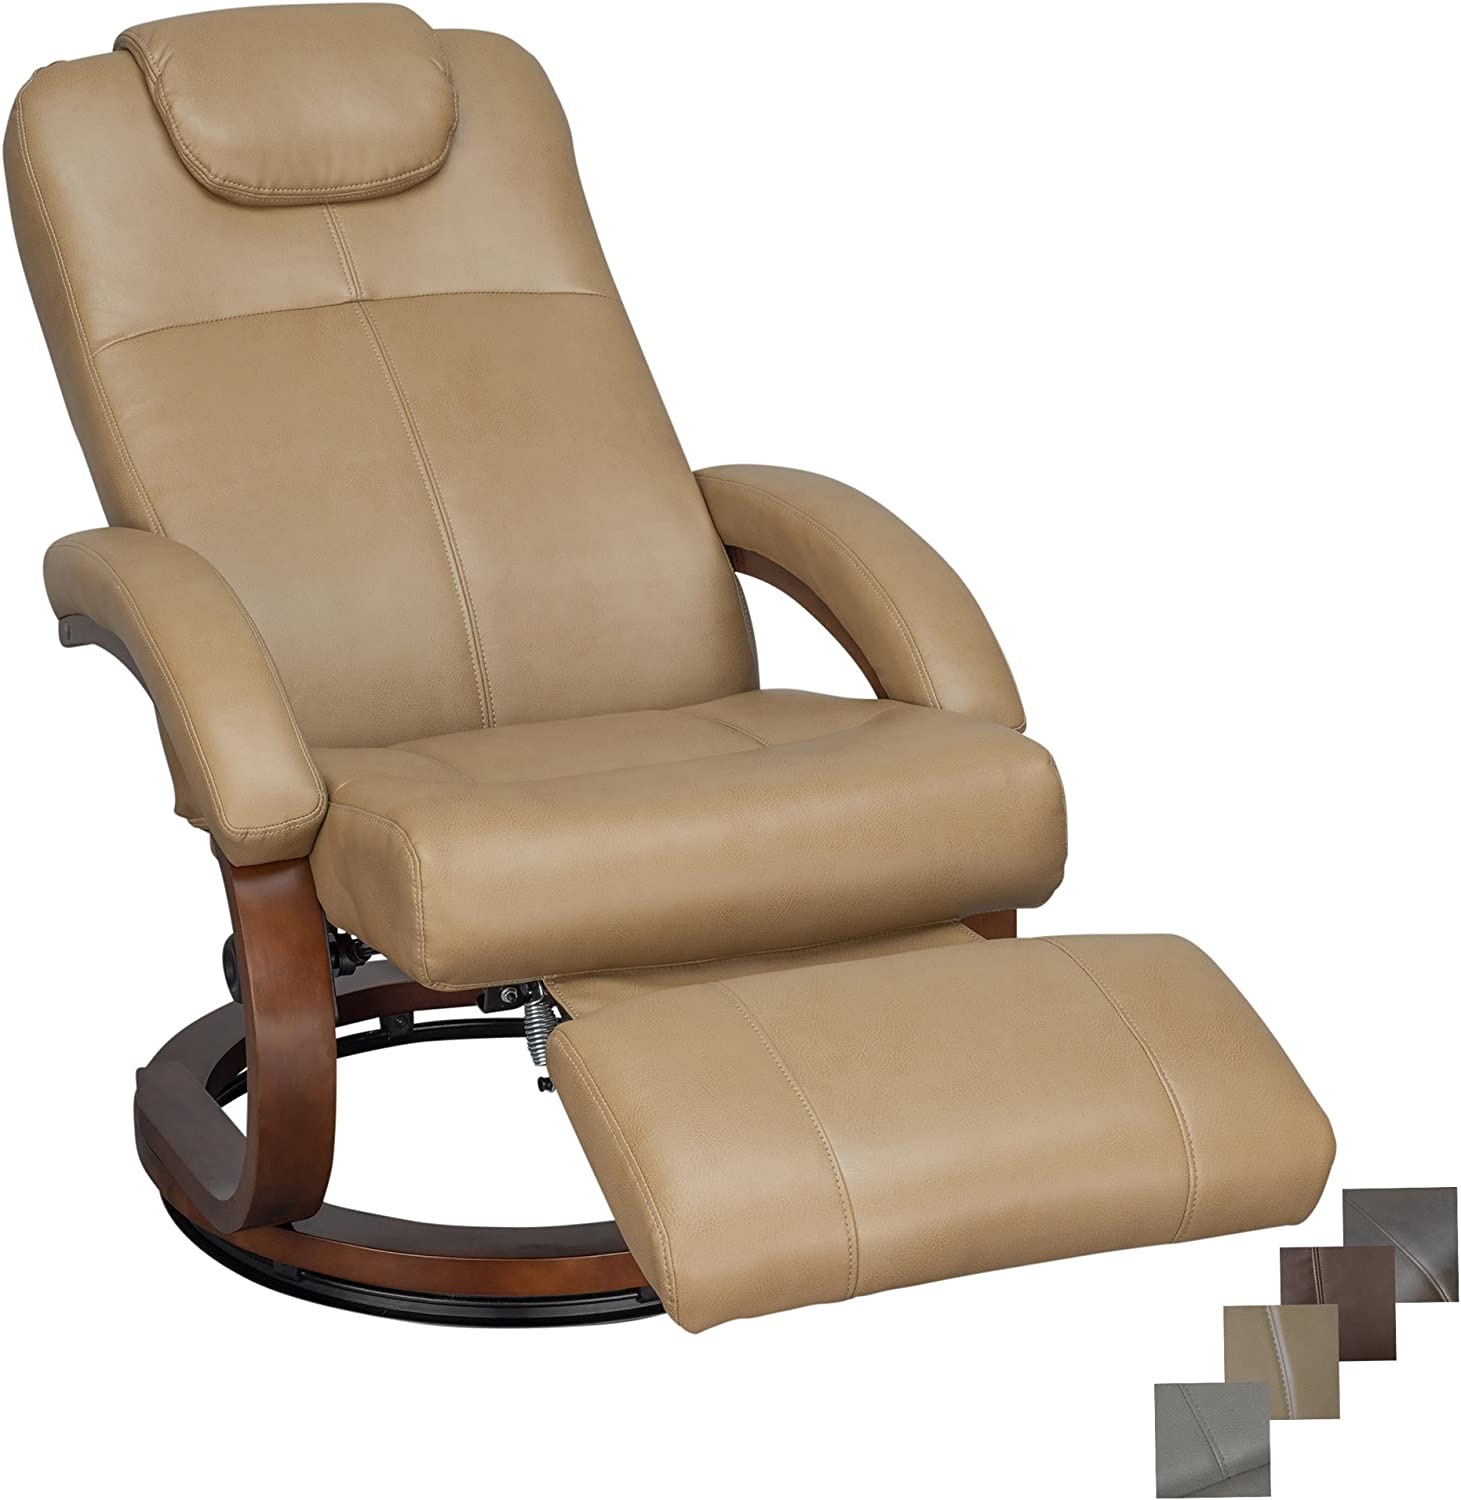 "RecPro Charles 28"" RV Euro Chair Recliner Modern Design RV Furniture (1, Toffee)"